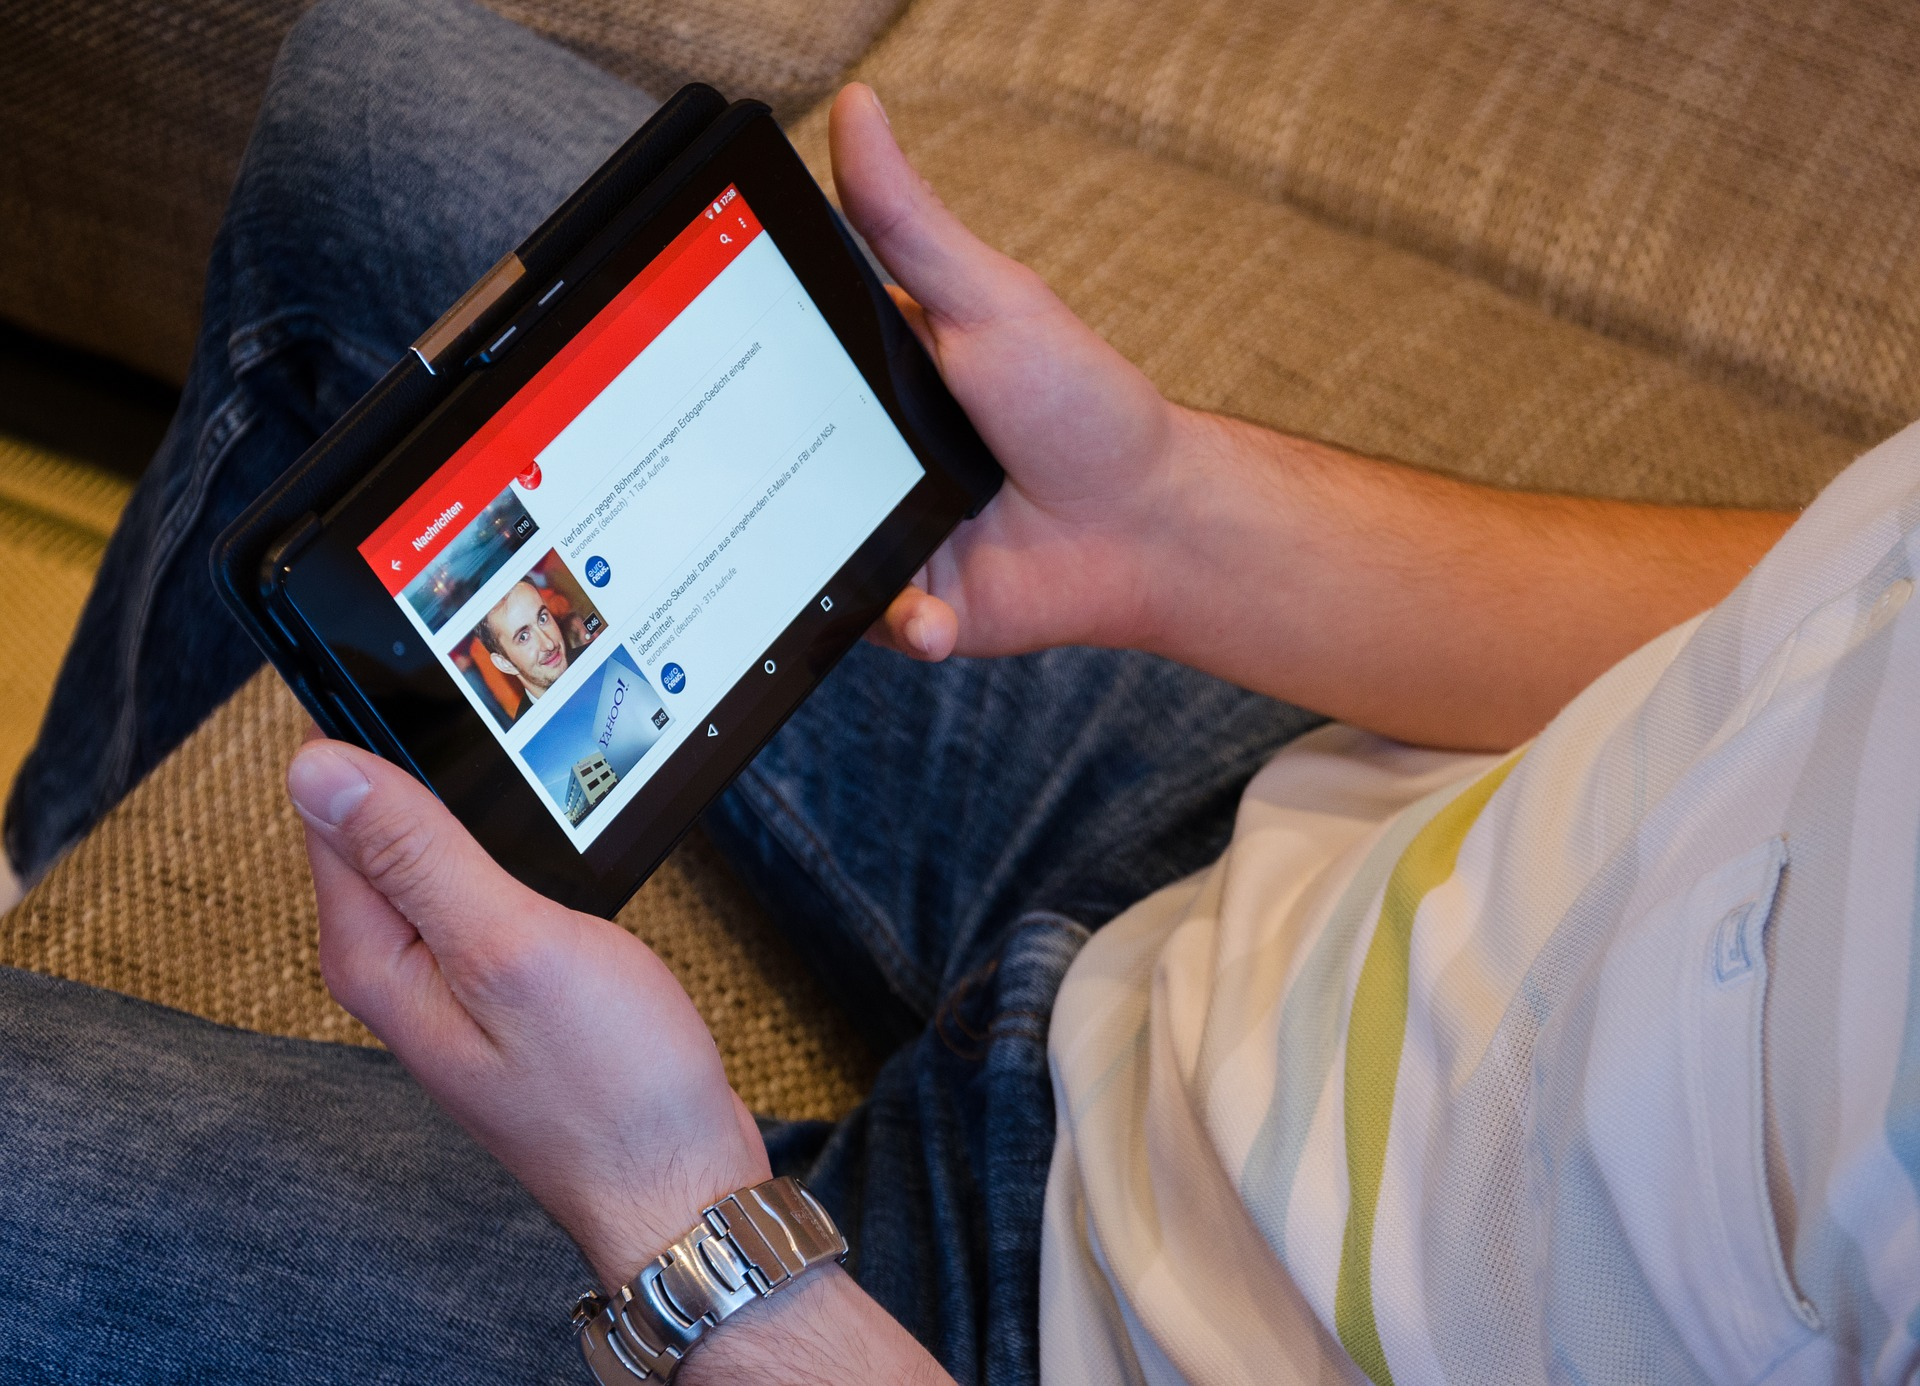 YouTube's parental controls will let you micro-manage the type of content your kids watch